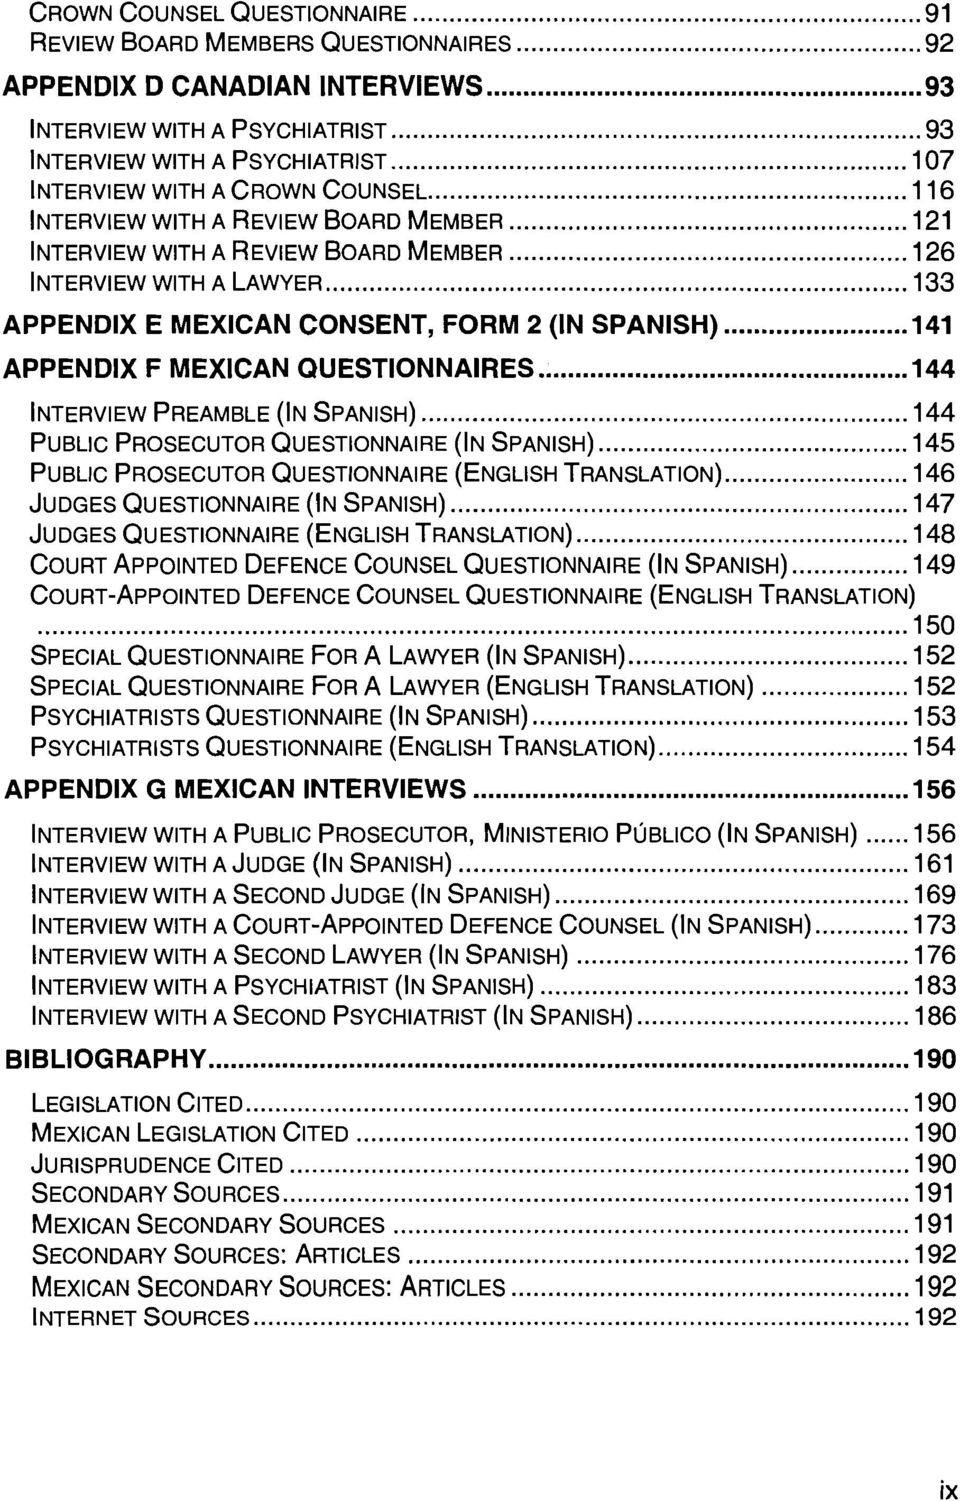 .. 144 APPENDIX G MEXICAN INTERVIEWS... 156 ~NTERVIEW WITH A PUBLIC PROSECUTOR. MINISTERIO PI~BLICO (IN SPANISH)... 156 ~NTERVIEW WITH A JUDGE (IN SPANISH).